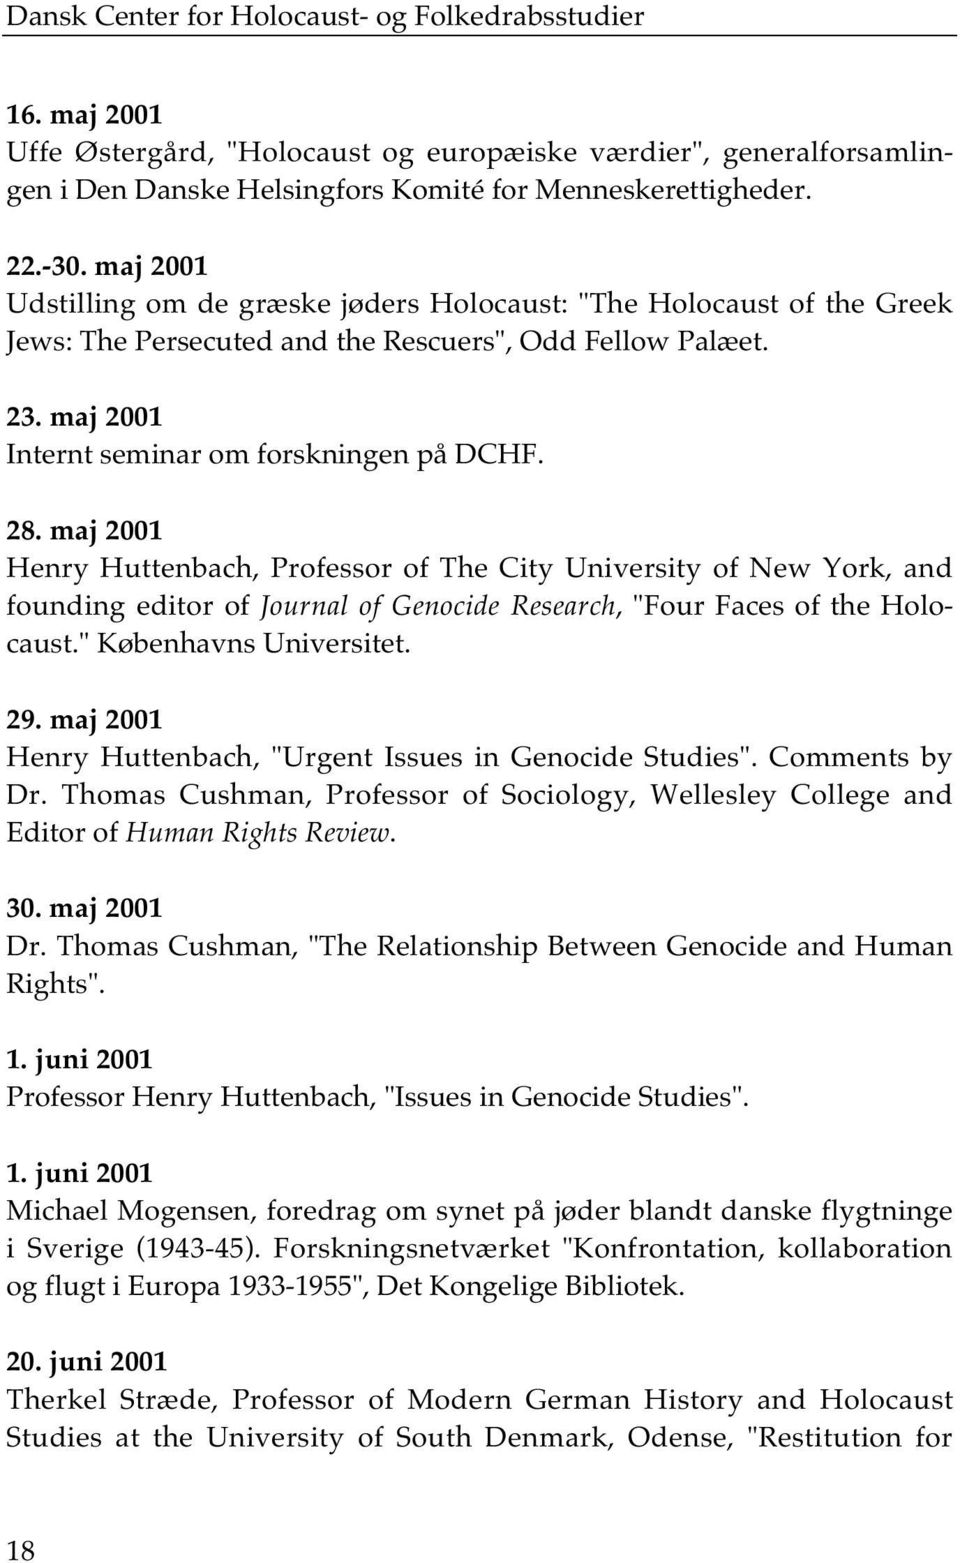 "maj 2001 Henry Huttenbach, Professor of The City University of New York, and founding editor of Journal of Genocide Research, ""Four Faces of the Holocaust."" Københavns Universitet. 29."